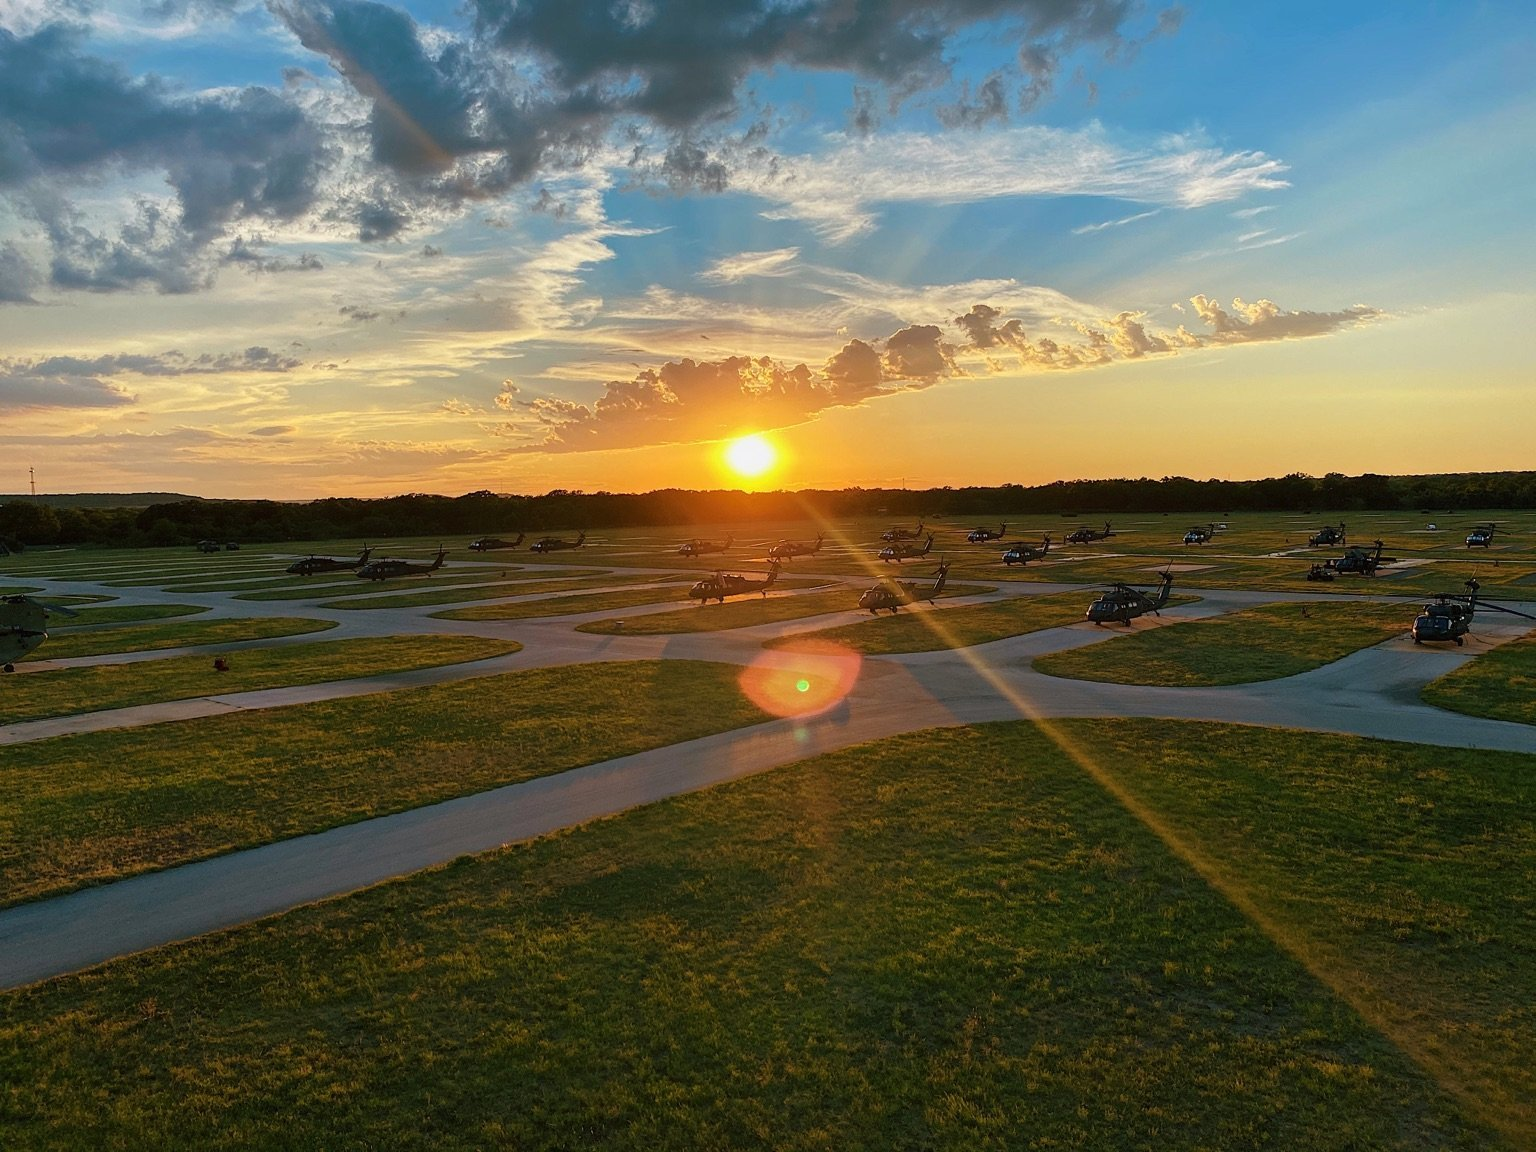 The sun sets behind an airfield at the 28th Expeditionary Combat Aviation Brigade's mobilization station at Fort Hood, Texas. (Staff Sgt. Breanna Chase/Army)